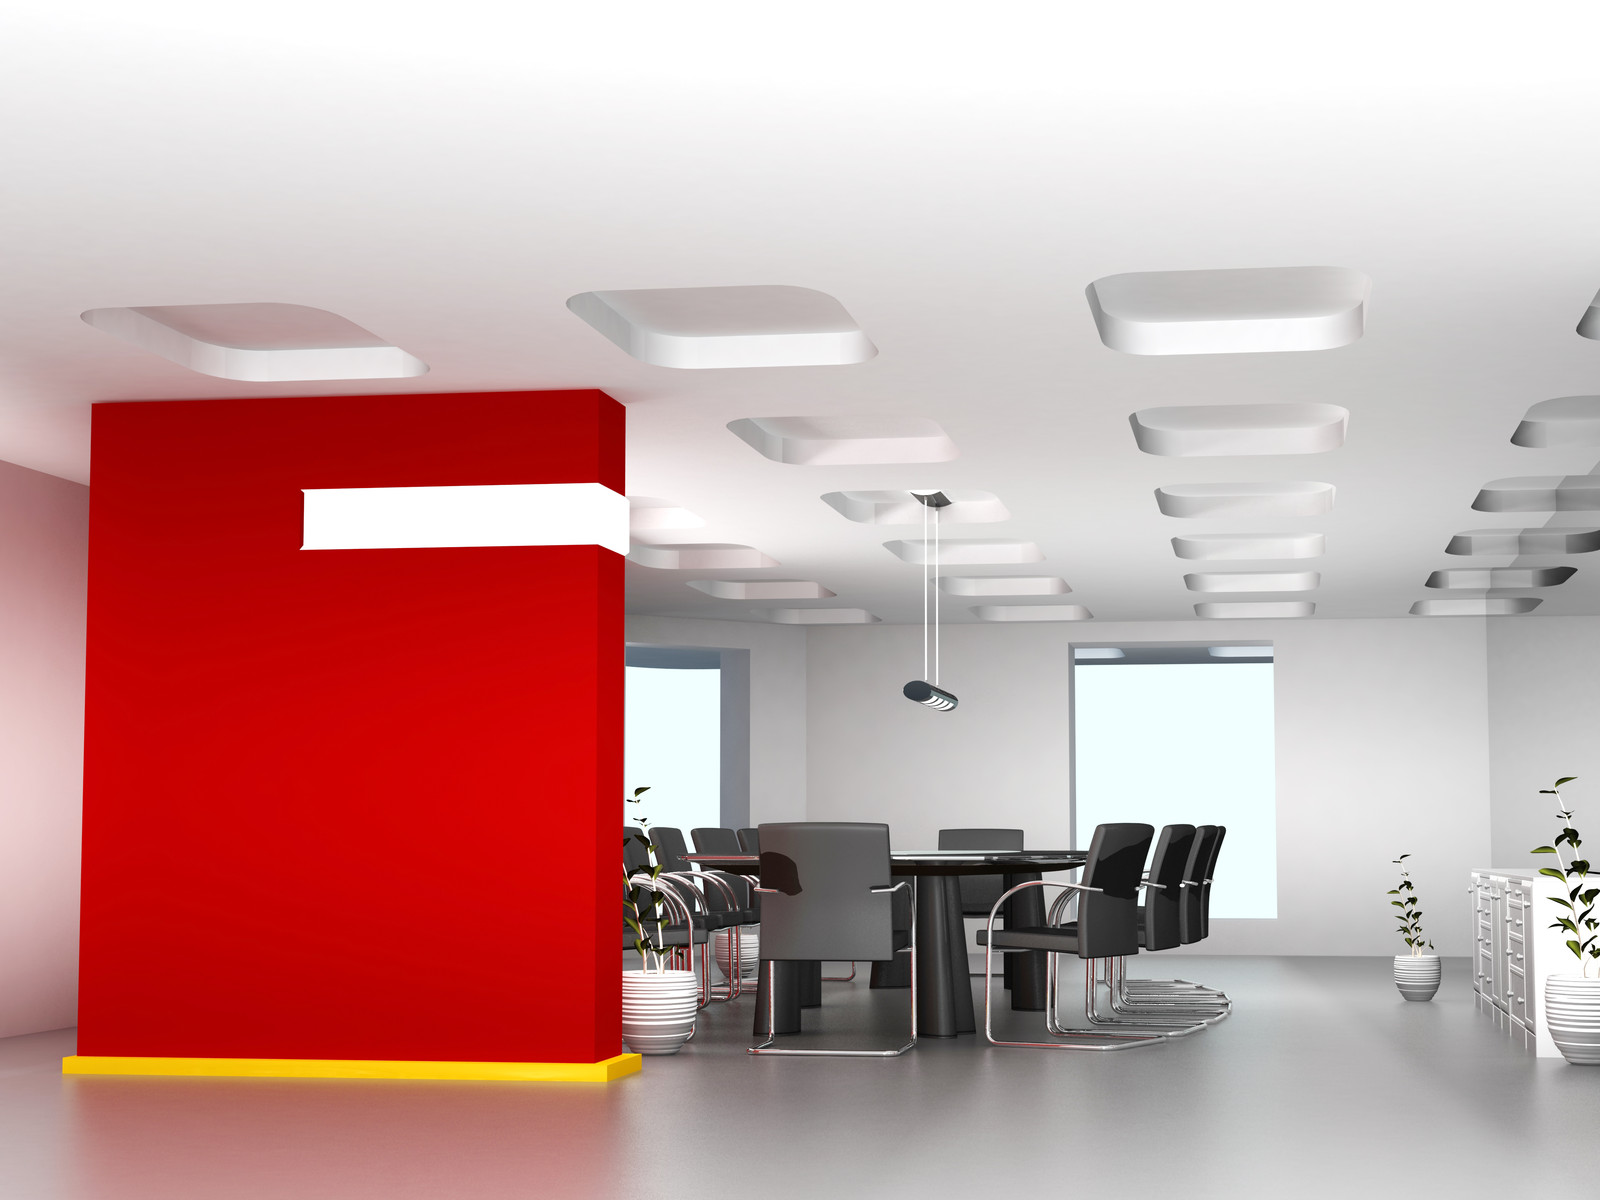 Commercial Painting throughout the office